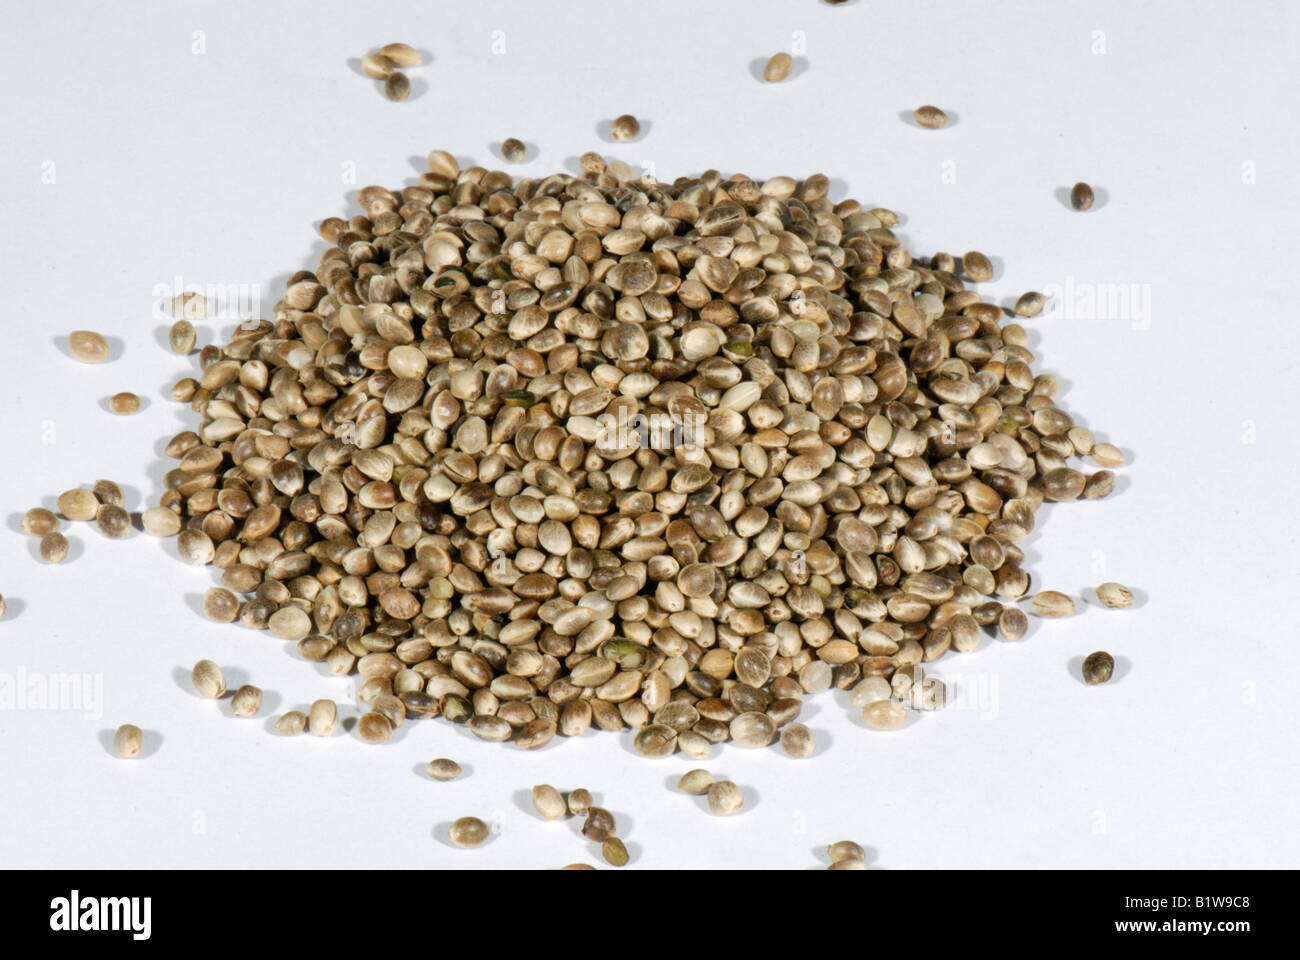 Organic hemp seed Cannabis sativa kitchen igredient sold in health food shops - Stock Image